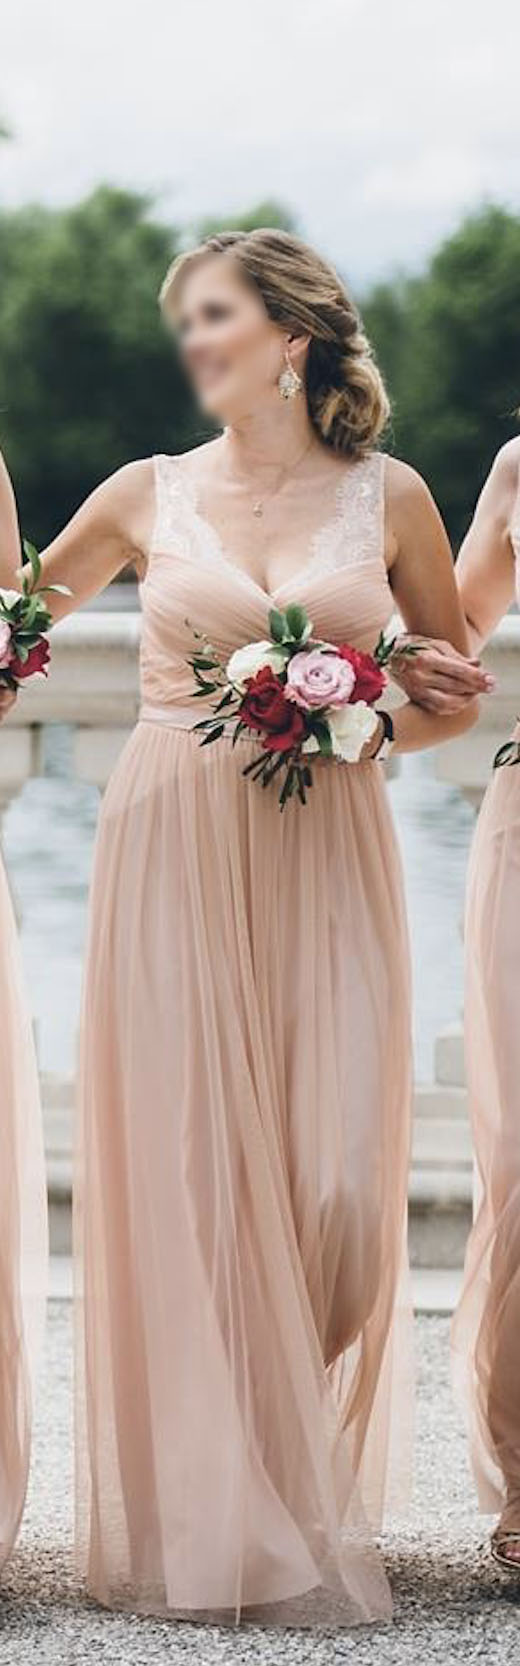 BHLDN - Fleur Dress